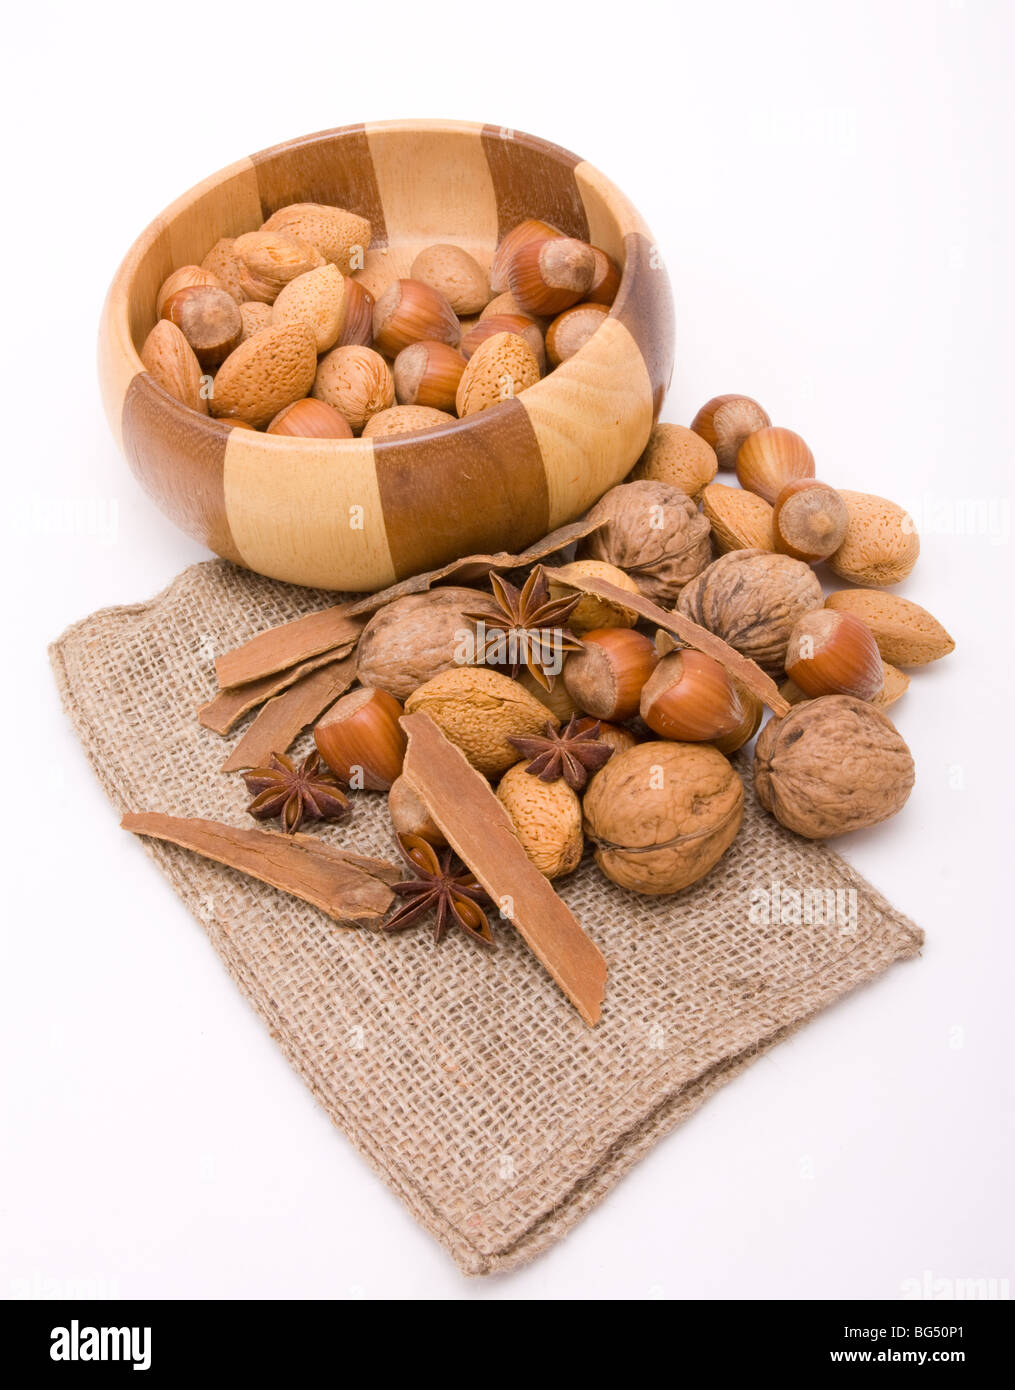 Festive Mixed Nuts with winter spices of Star Anise and Cinnamon. - Stock Image